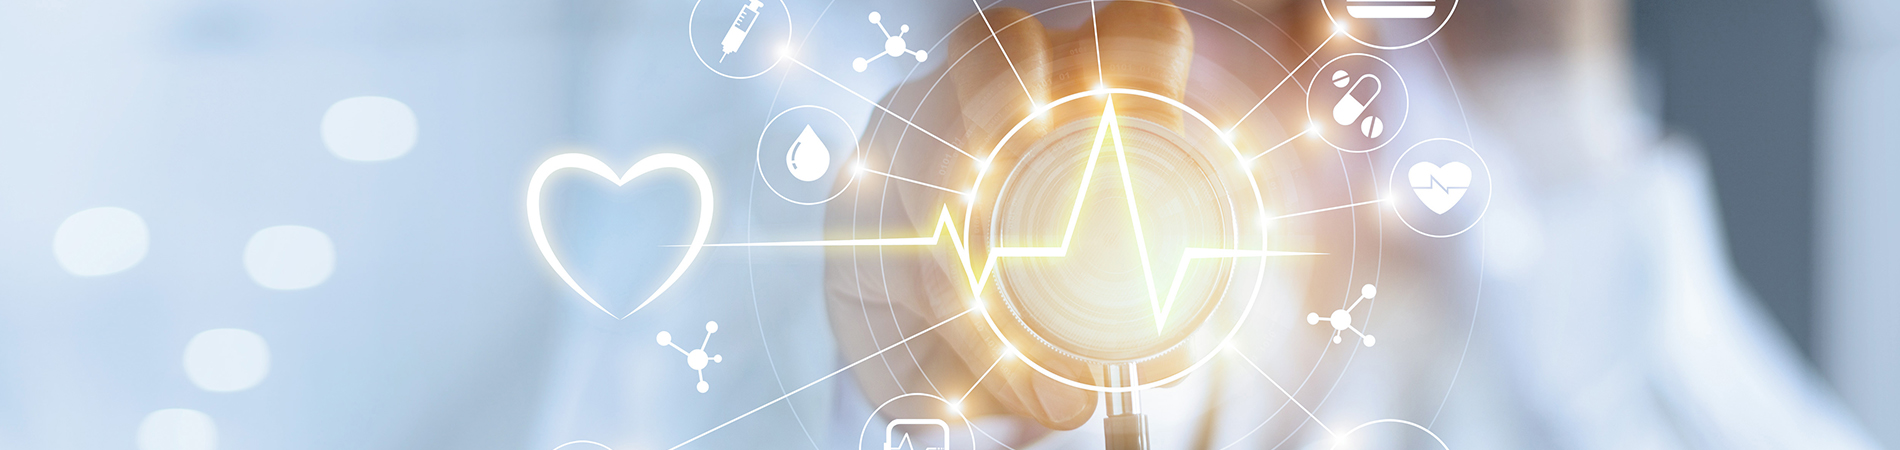 healthcare technology imagery with health symbols like an ambulance, heart, thermometer, and more.